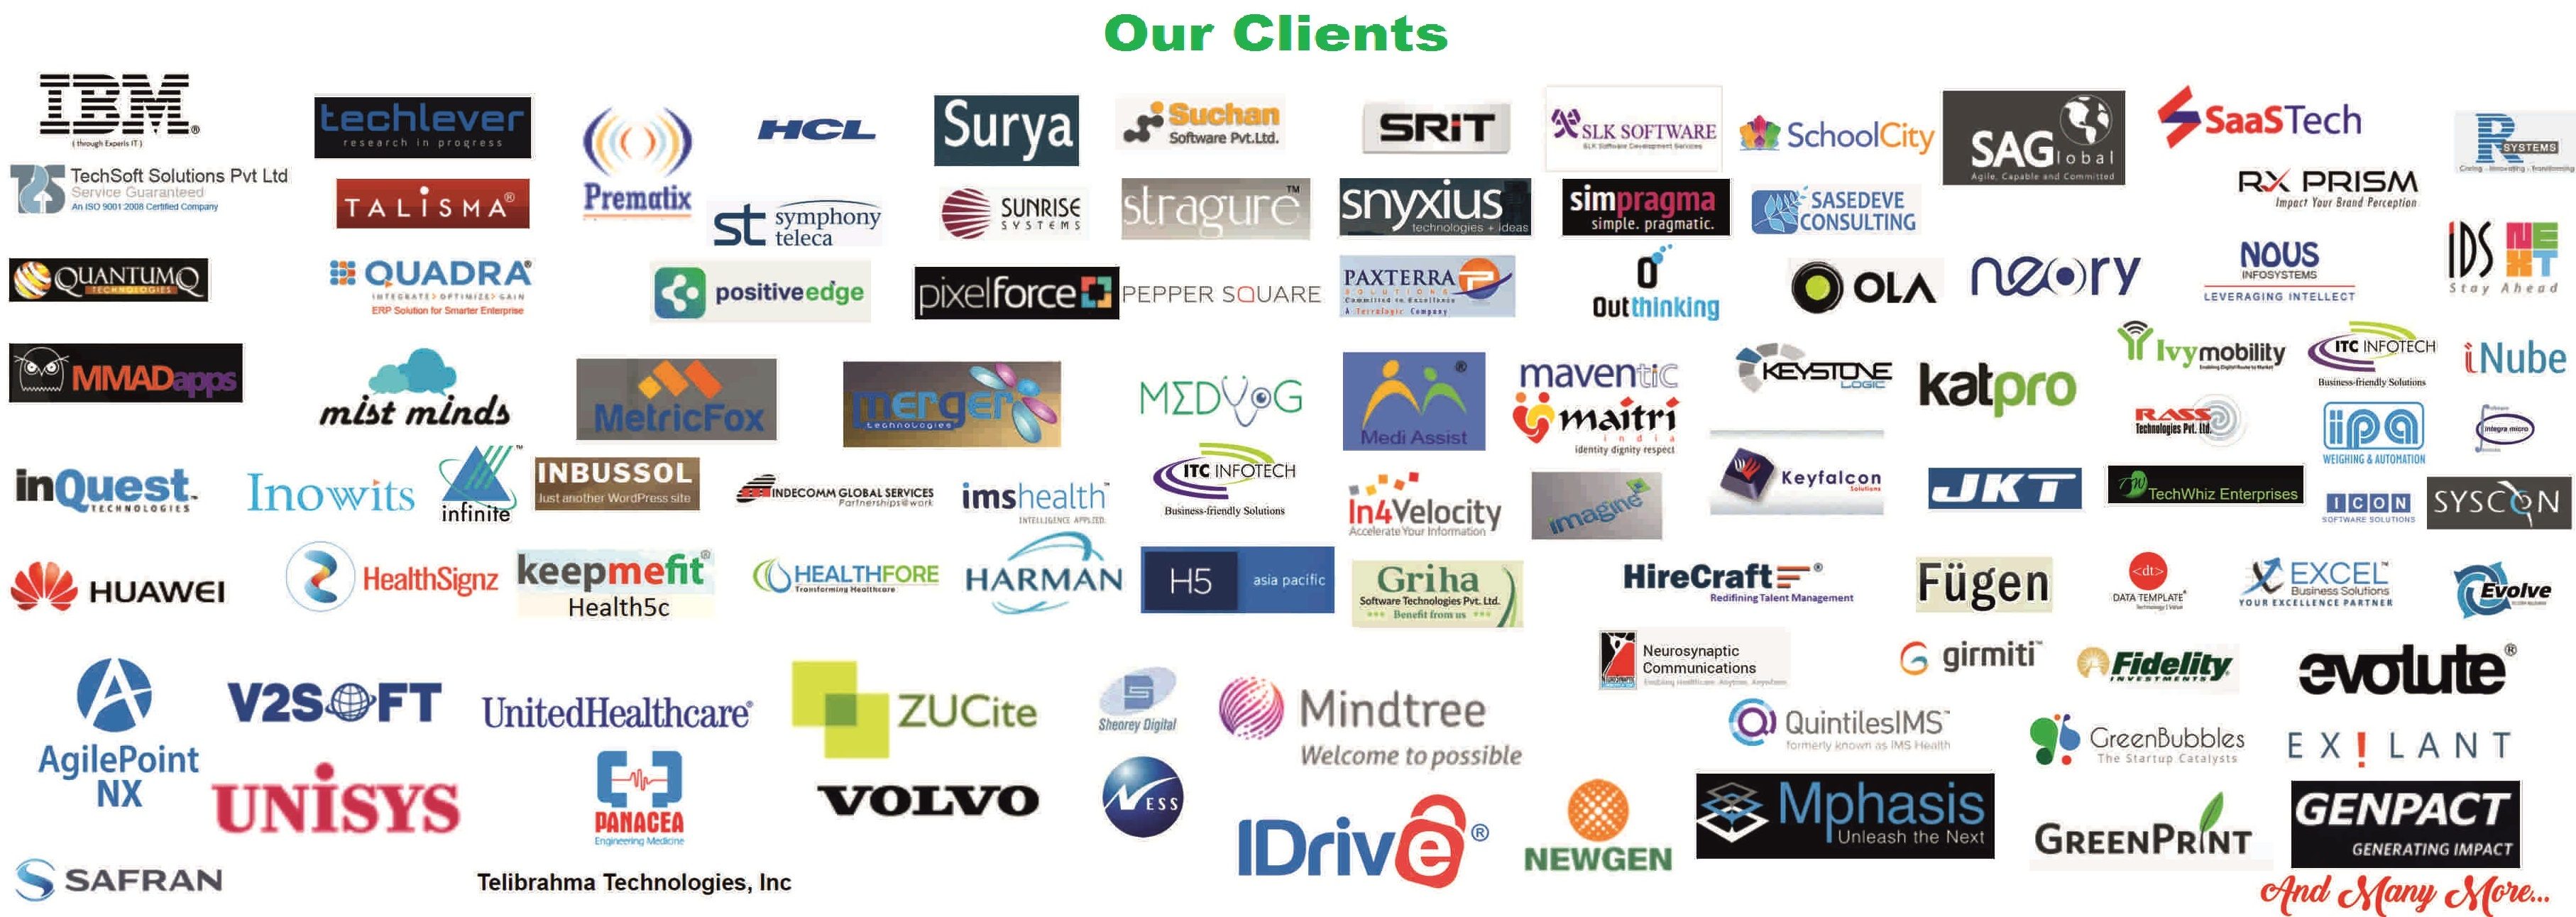 palle_technologies_placements